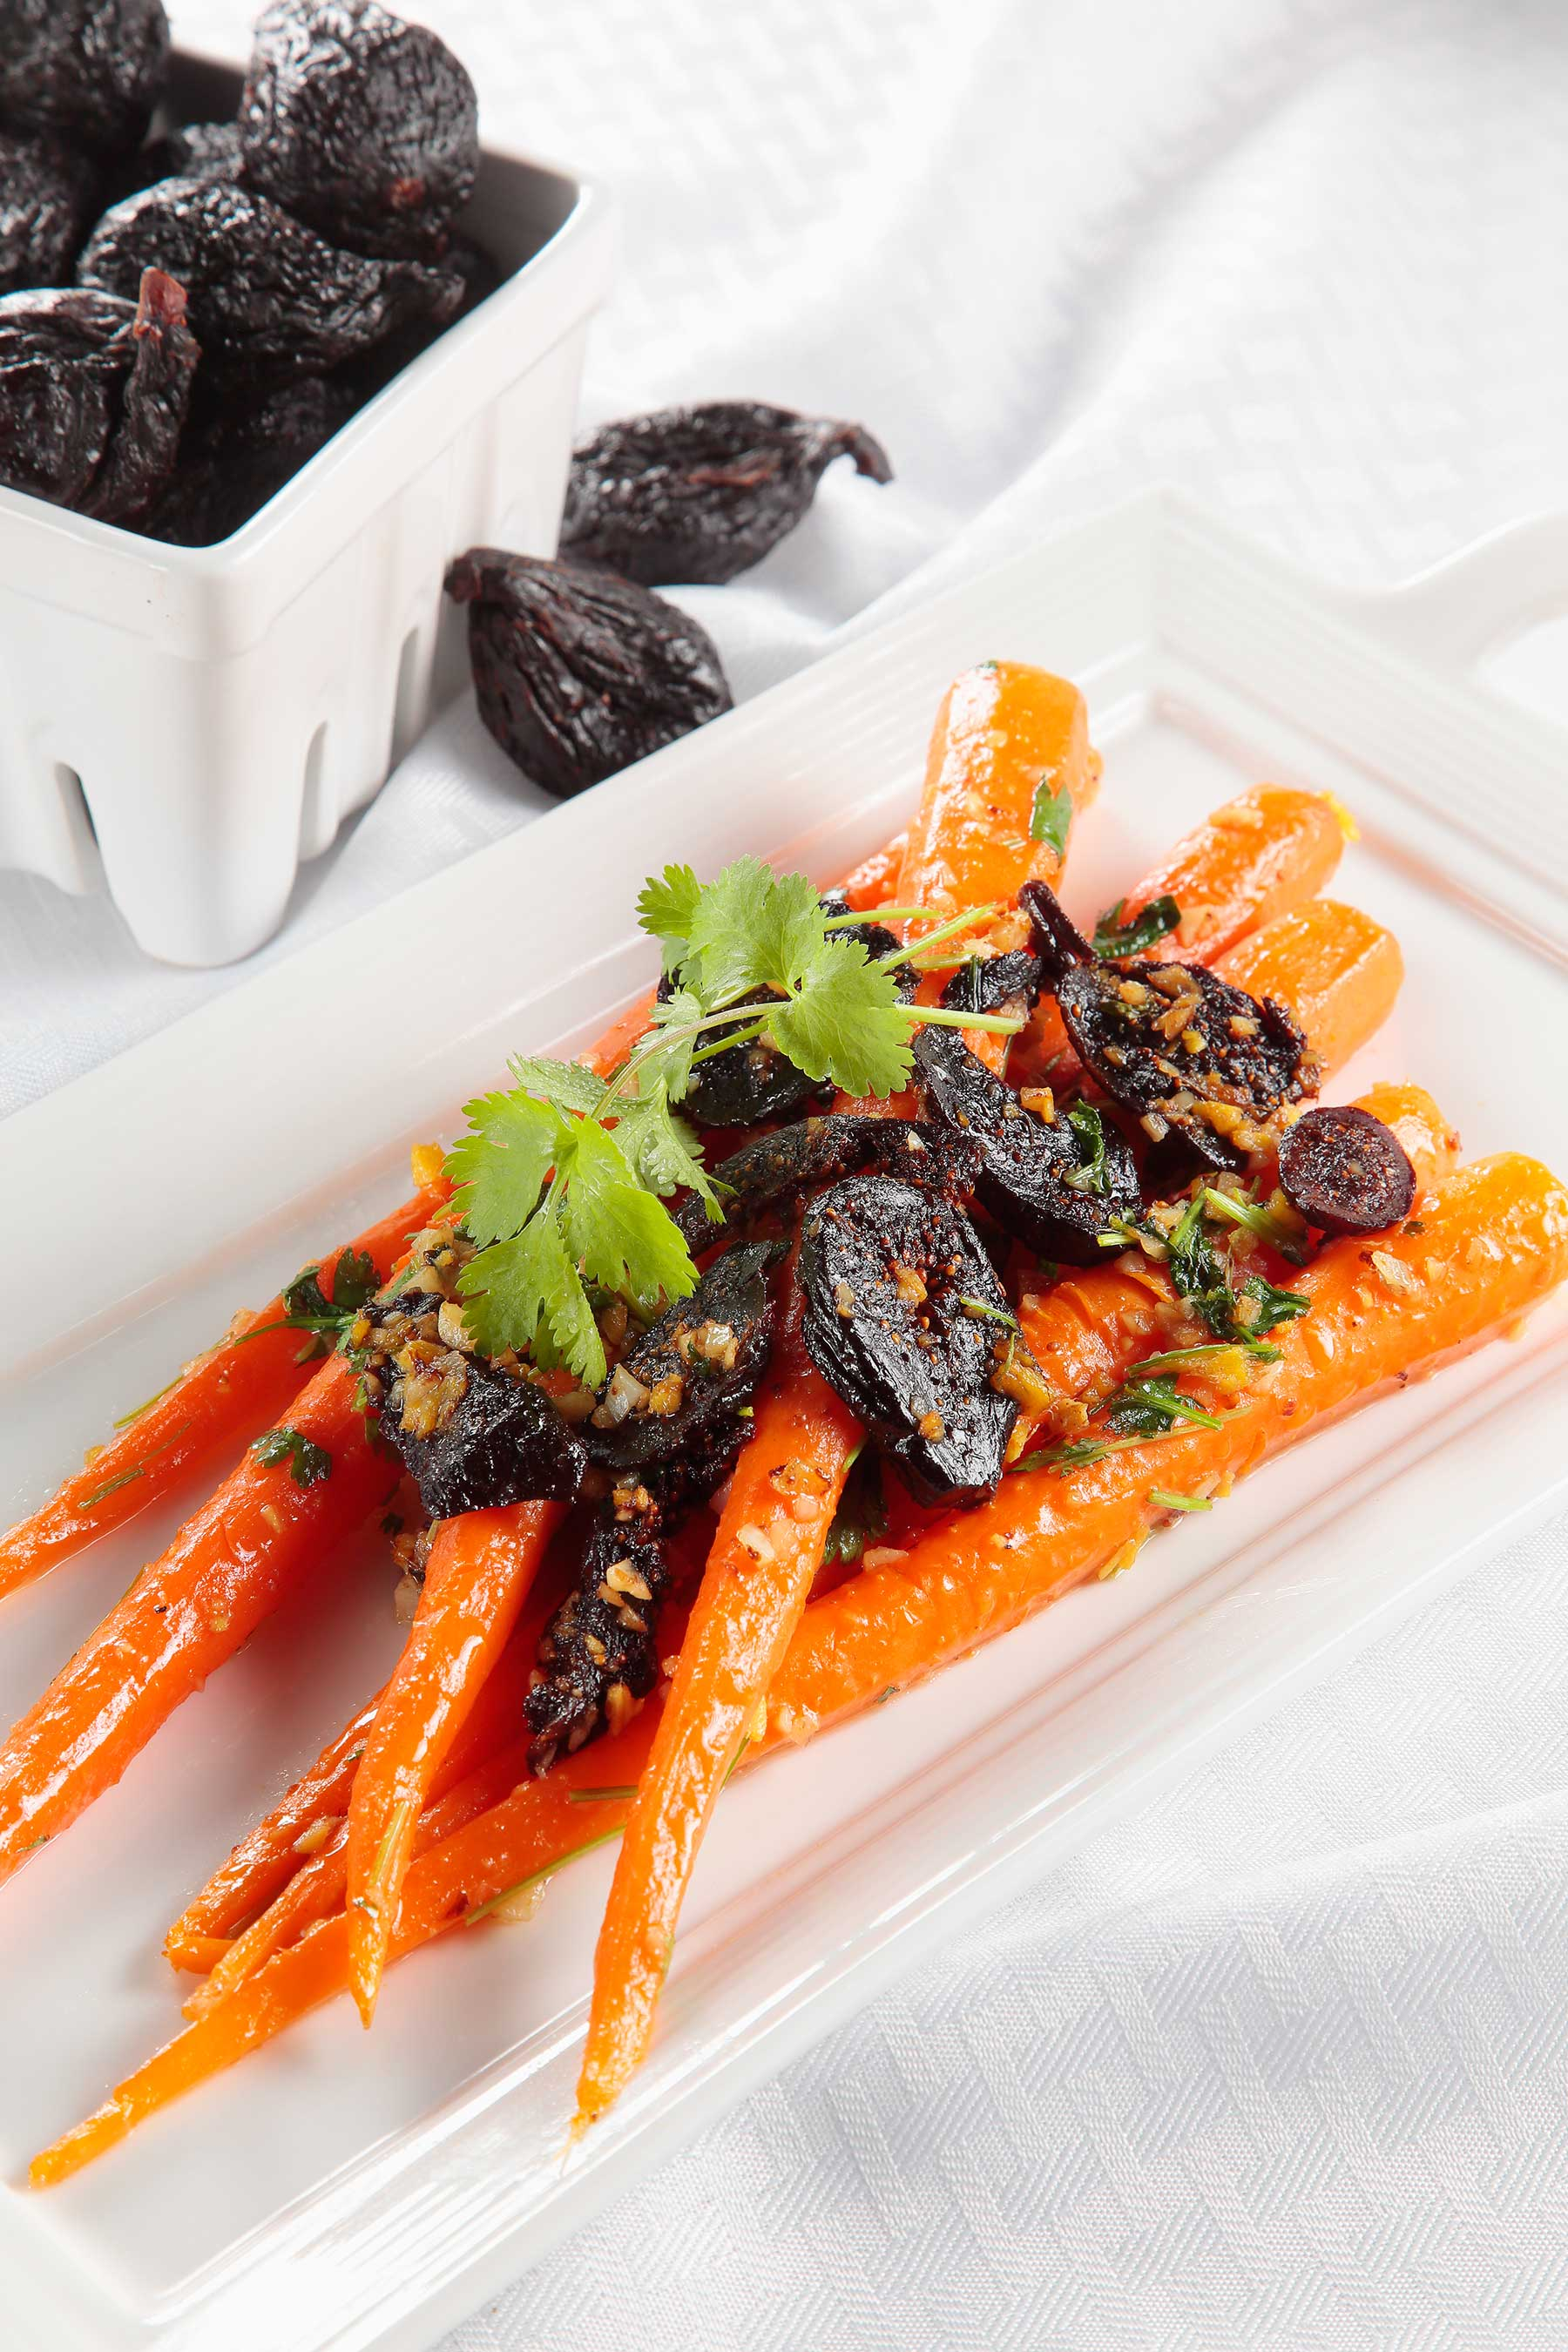 Pump up the flavor of glazed carrots with California Dried Figs